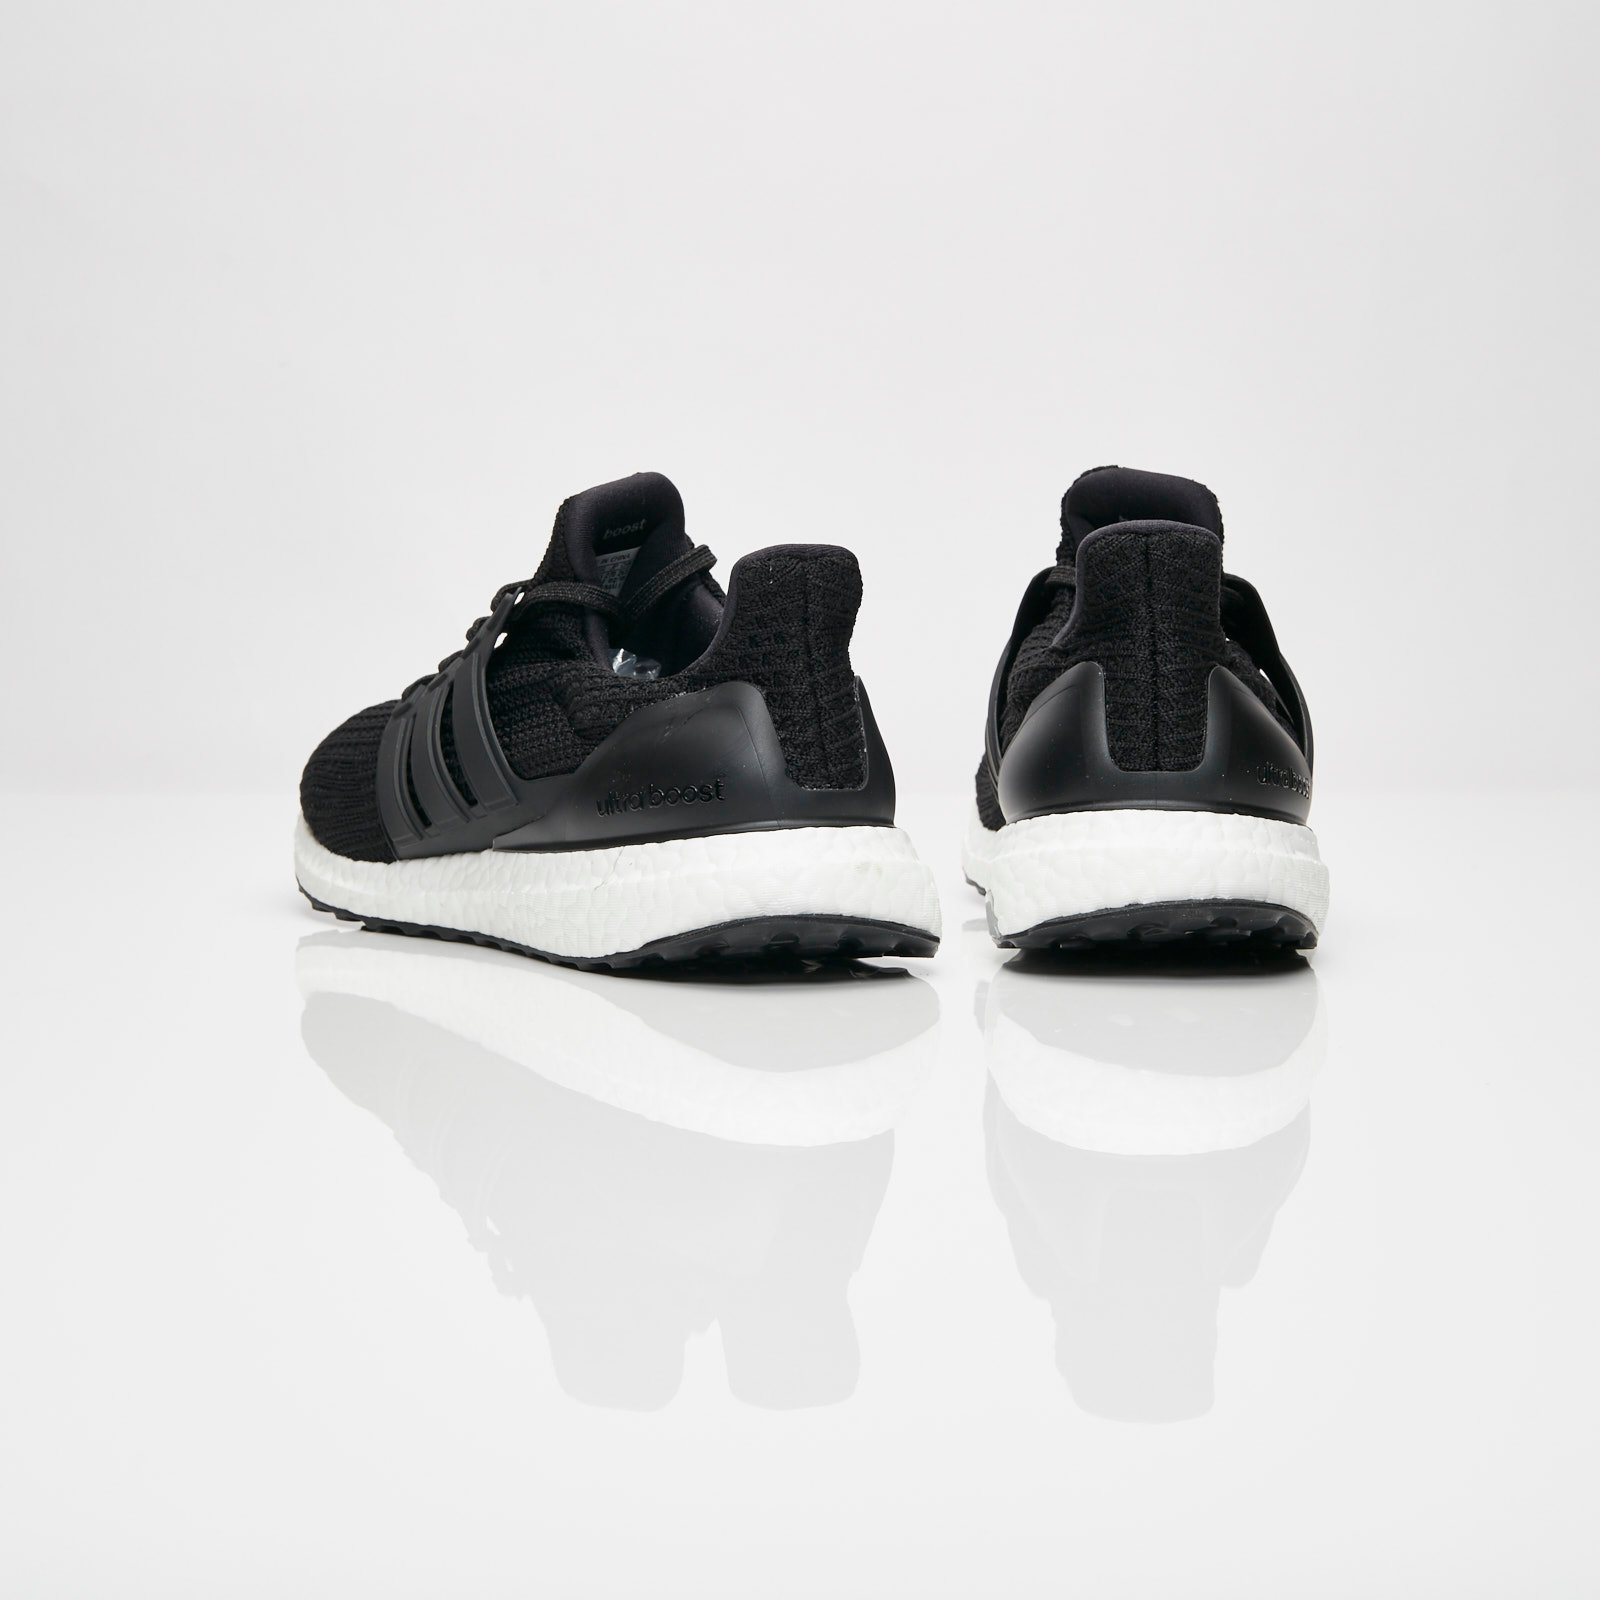 detailed look 5bfea 0a3ef adidas UltraBOOST - Bb6166 - Sneakersnstuff | sneakers ...